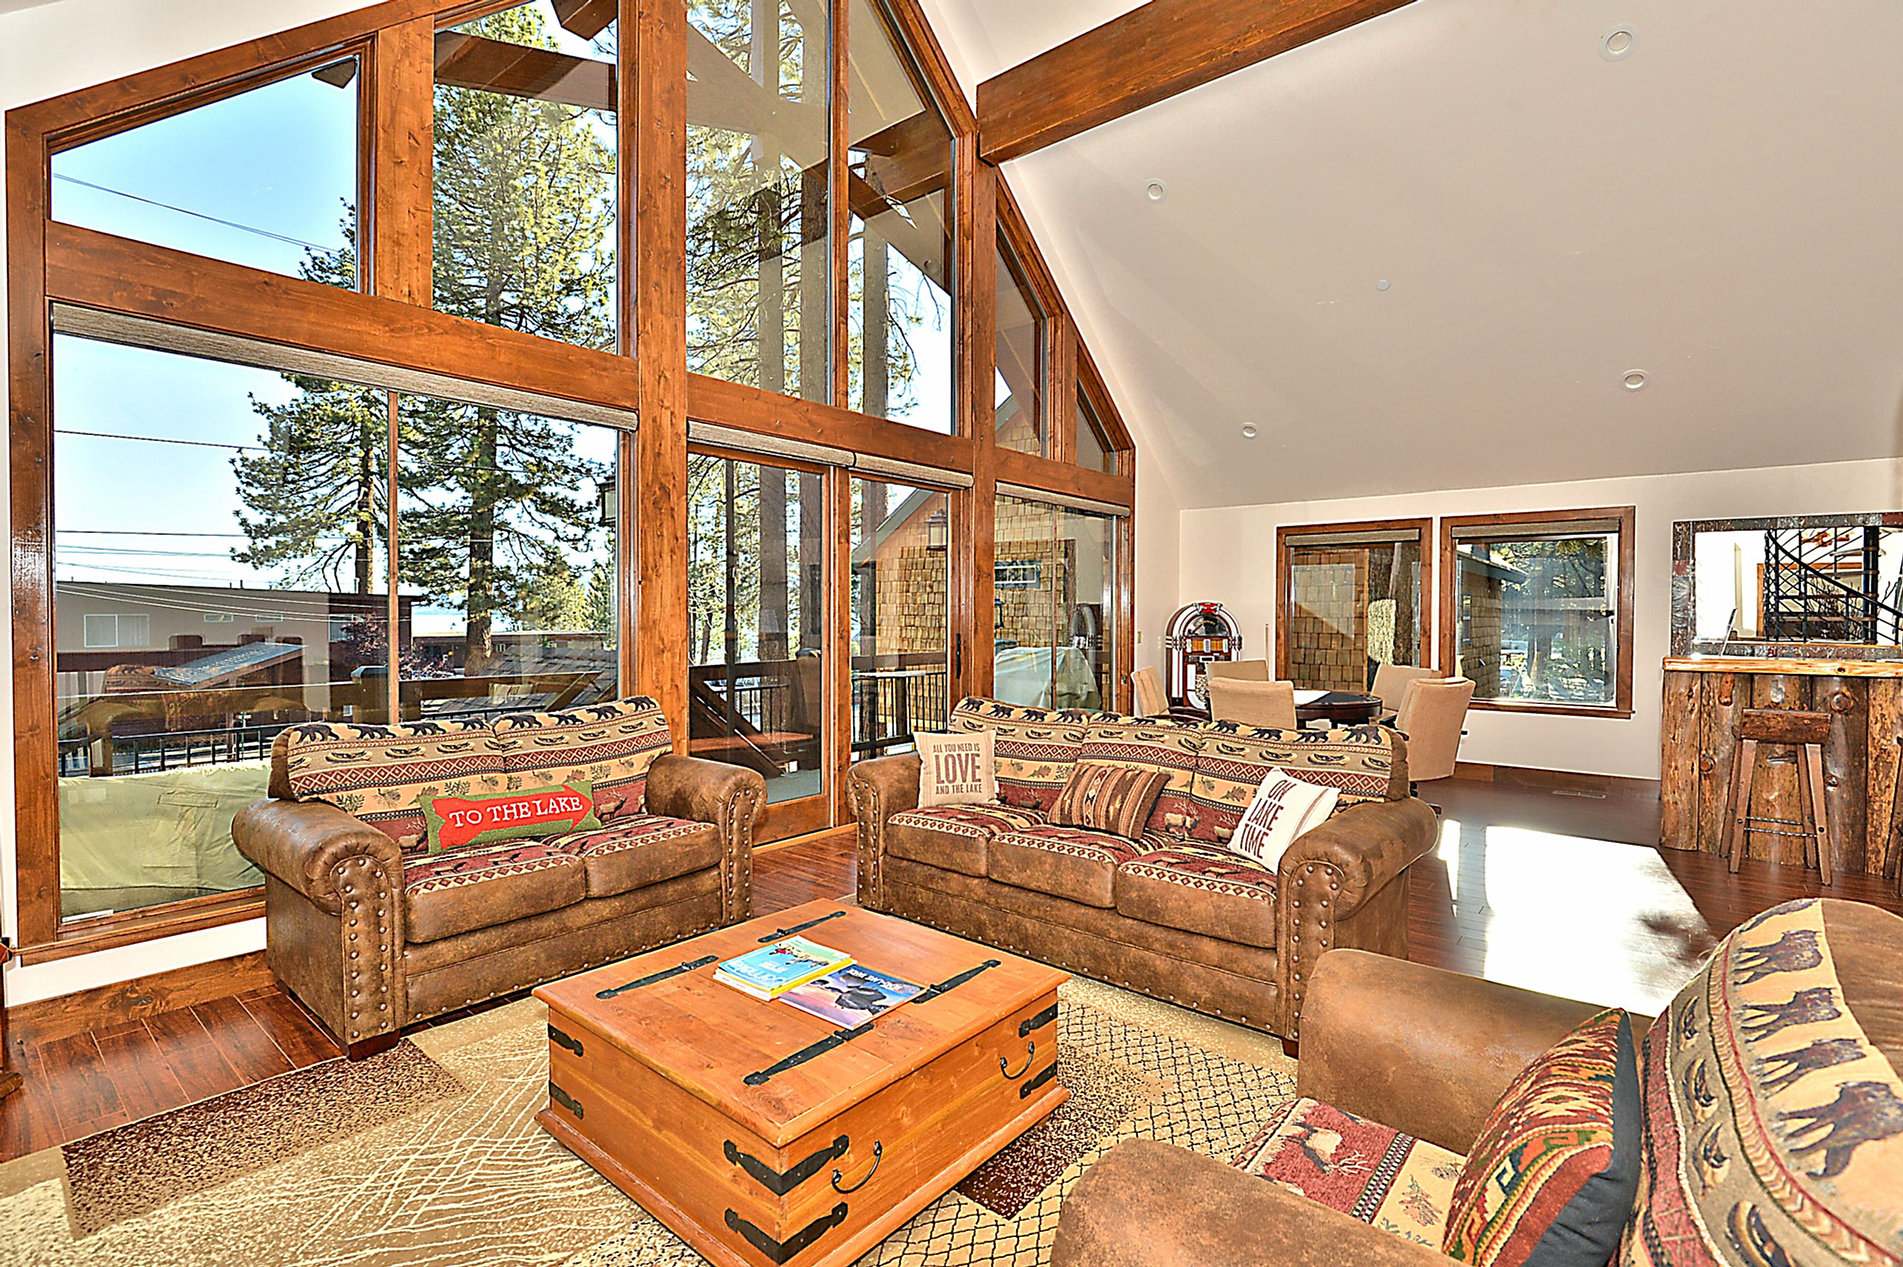 tahoe picturesque located home west index pine in shore sugar with private the orig cabin s rental offers lake on tahoma town cabins bedrooms our and of door a point loft